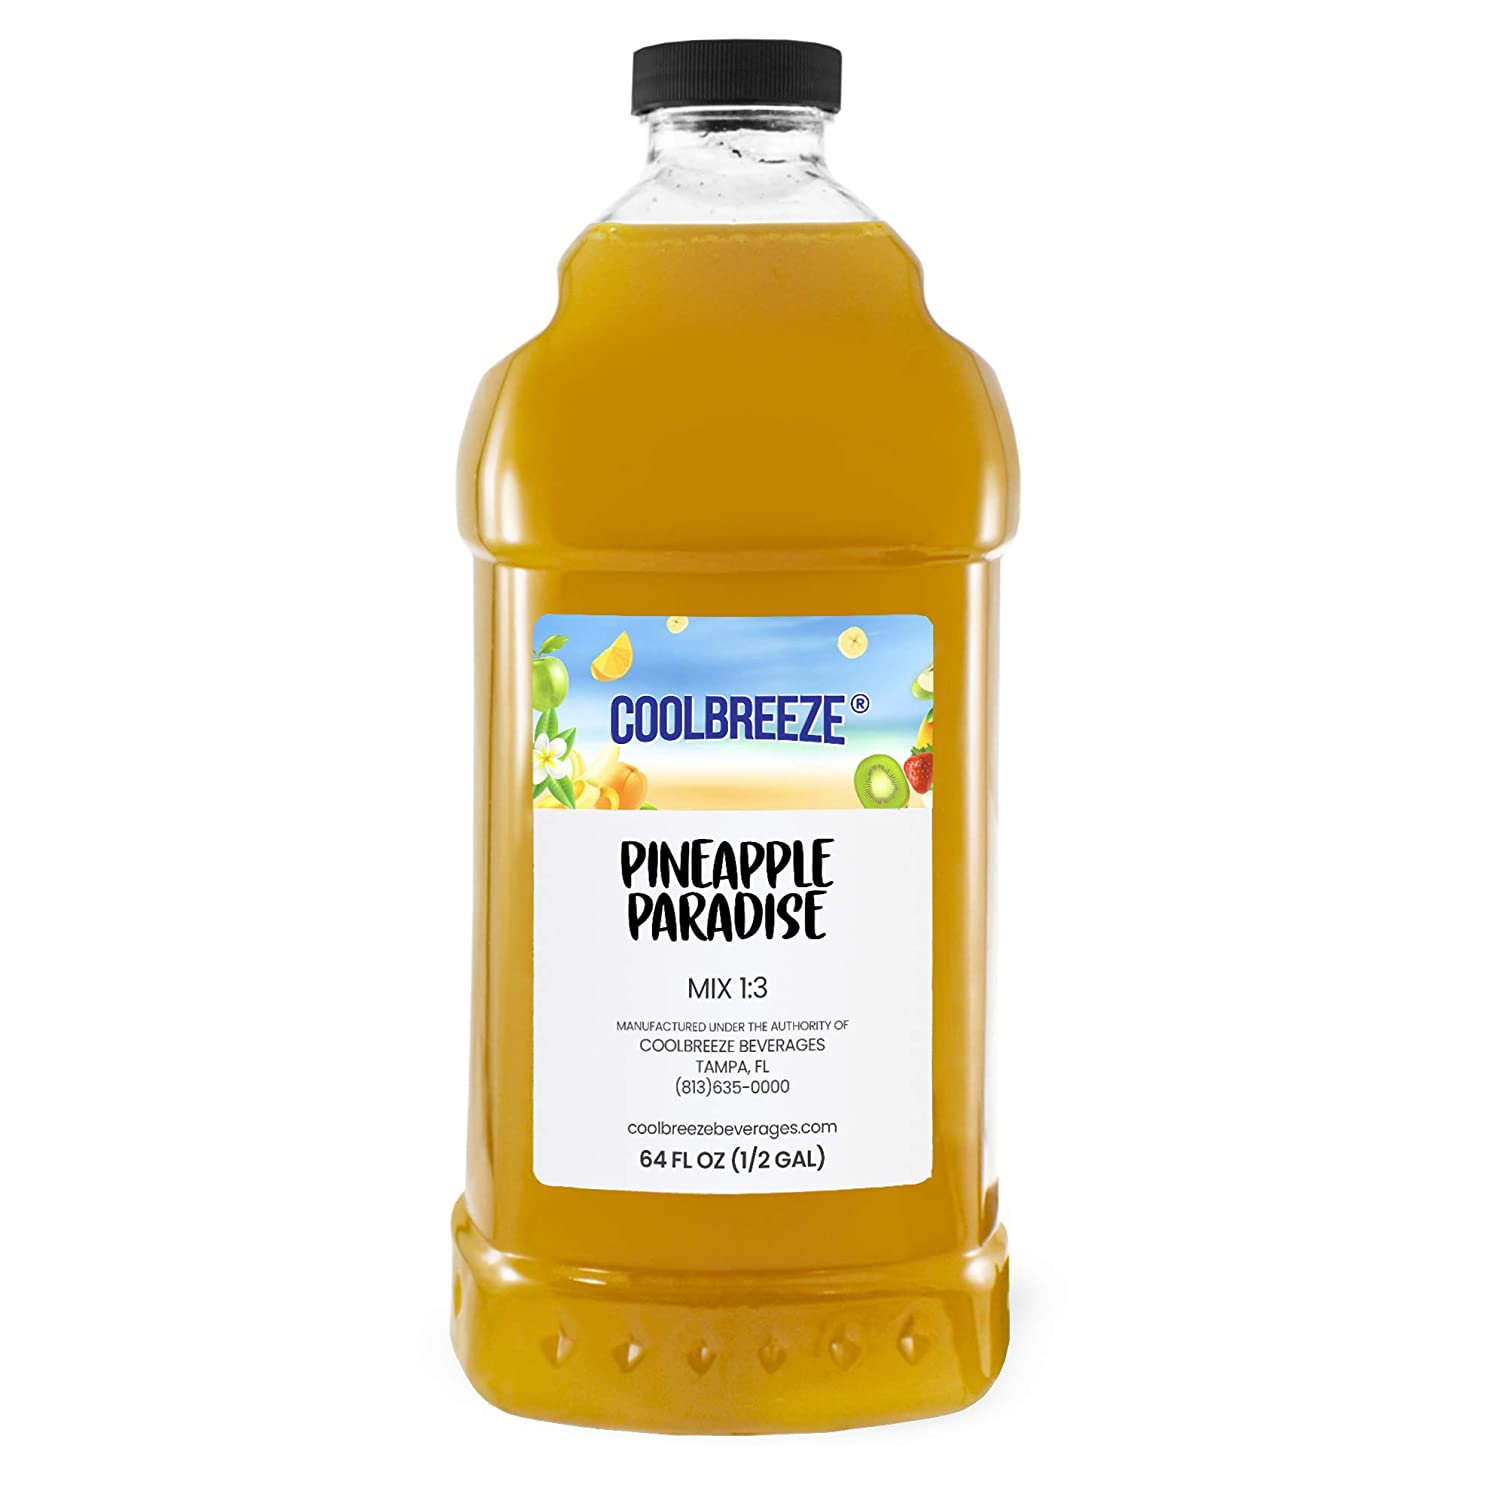 Cool Breeze Beverages Ready To Use Slush Mix, Pineapple, 1/2 gal